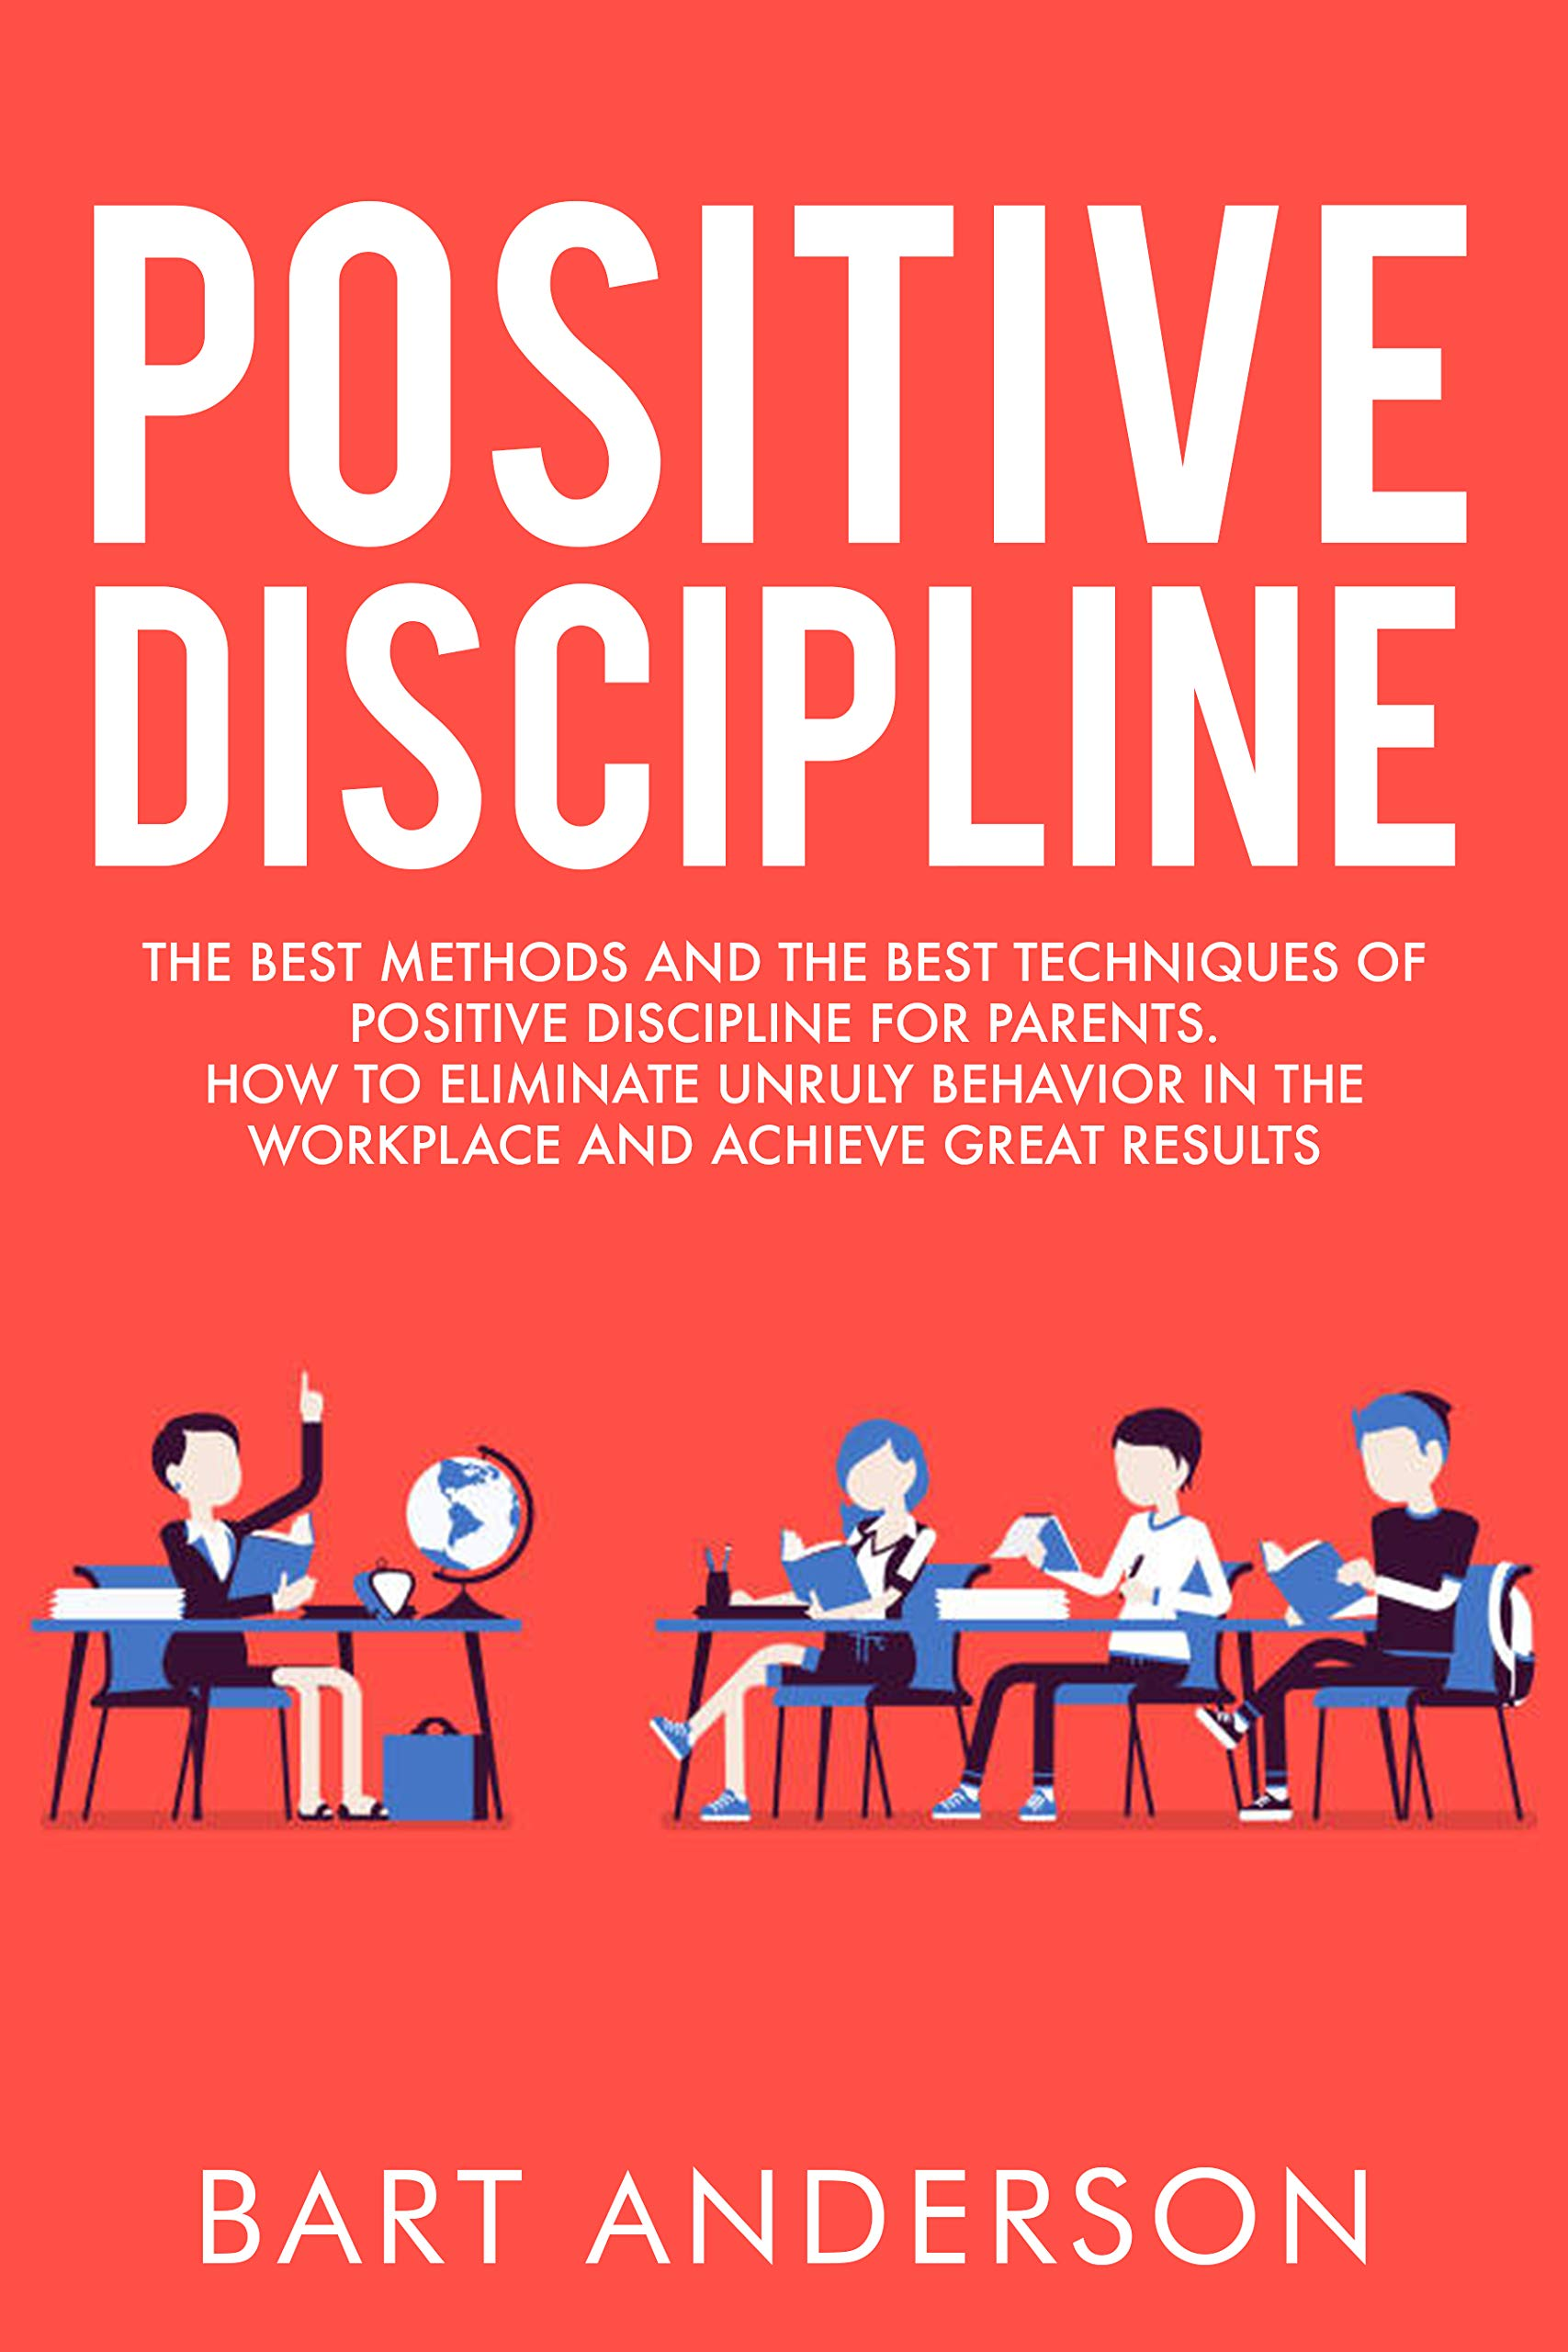 Positive Discipline  The Best Methods And The Best Techniques Of Positive Discipline For Parents. How To Eliminate Unruly Behavior In The Workplace And Achieve Great Results  English Edition